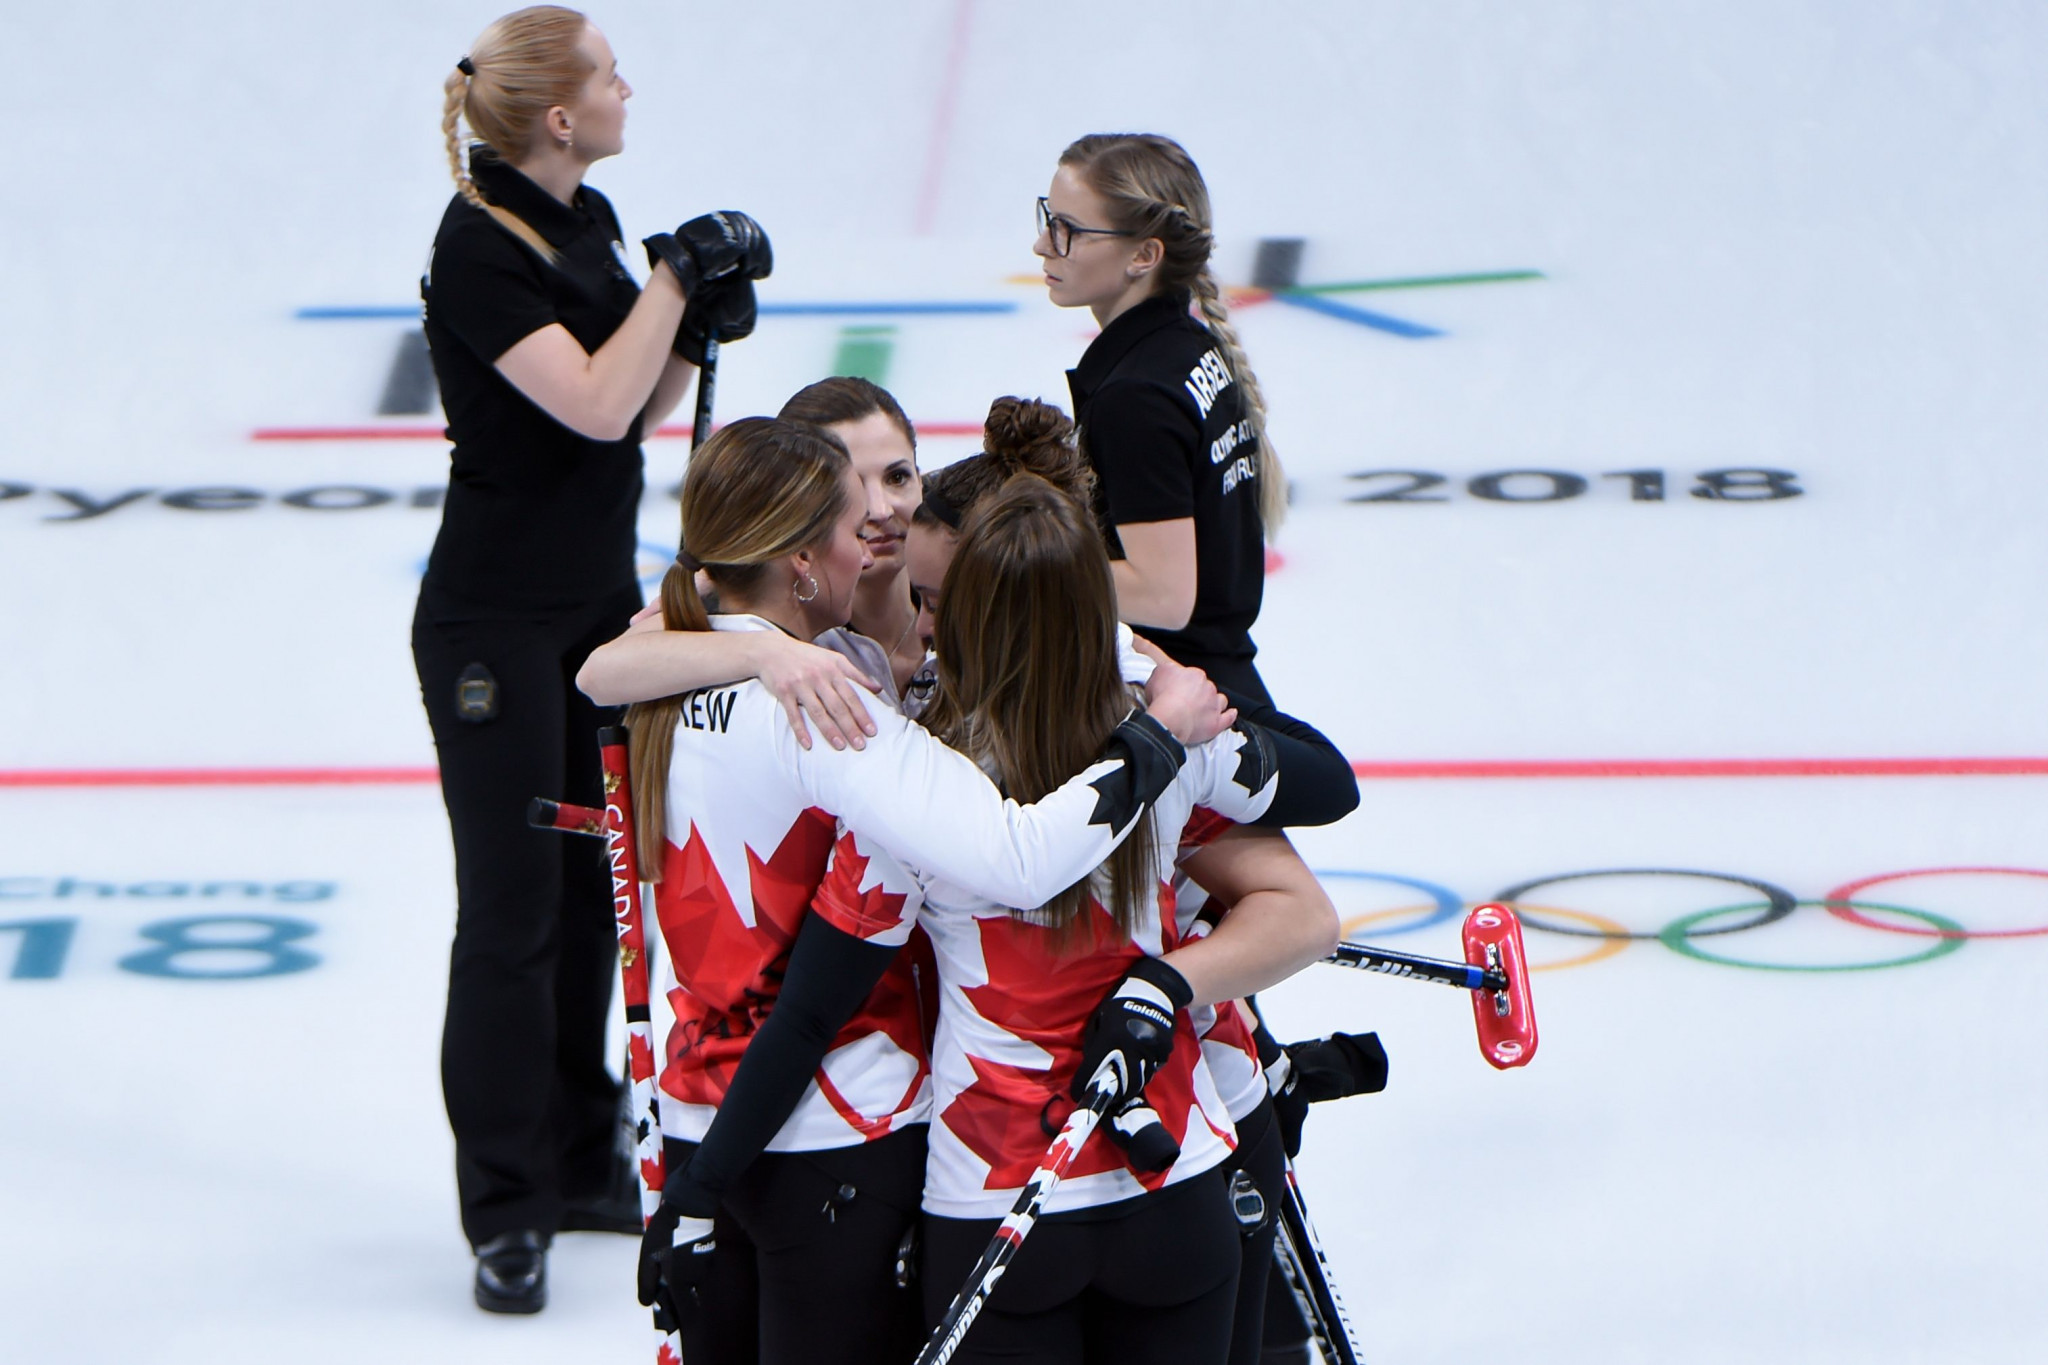 Canada's Team Homan to curl on despite Pyeongchang 2018 disappointment